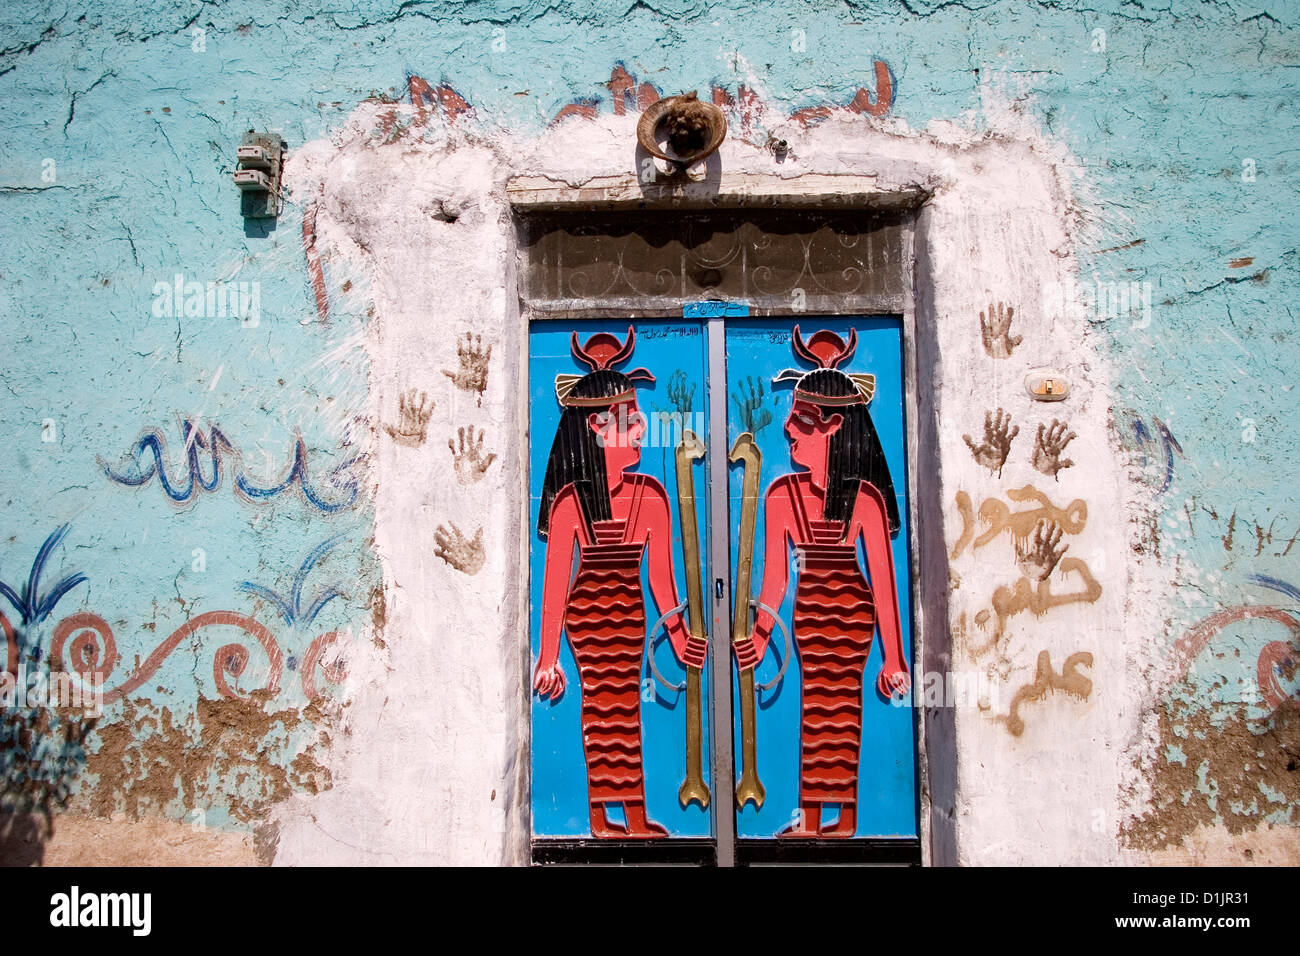 gypt Luxor west bank entrance door to a house at Gurna - Stock Image